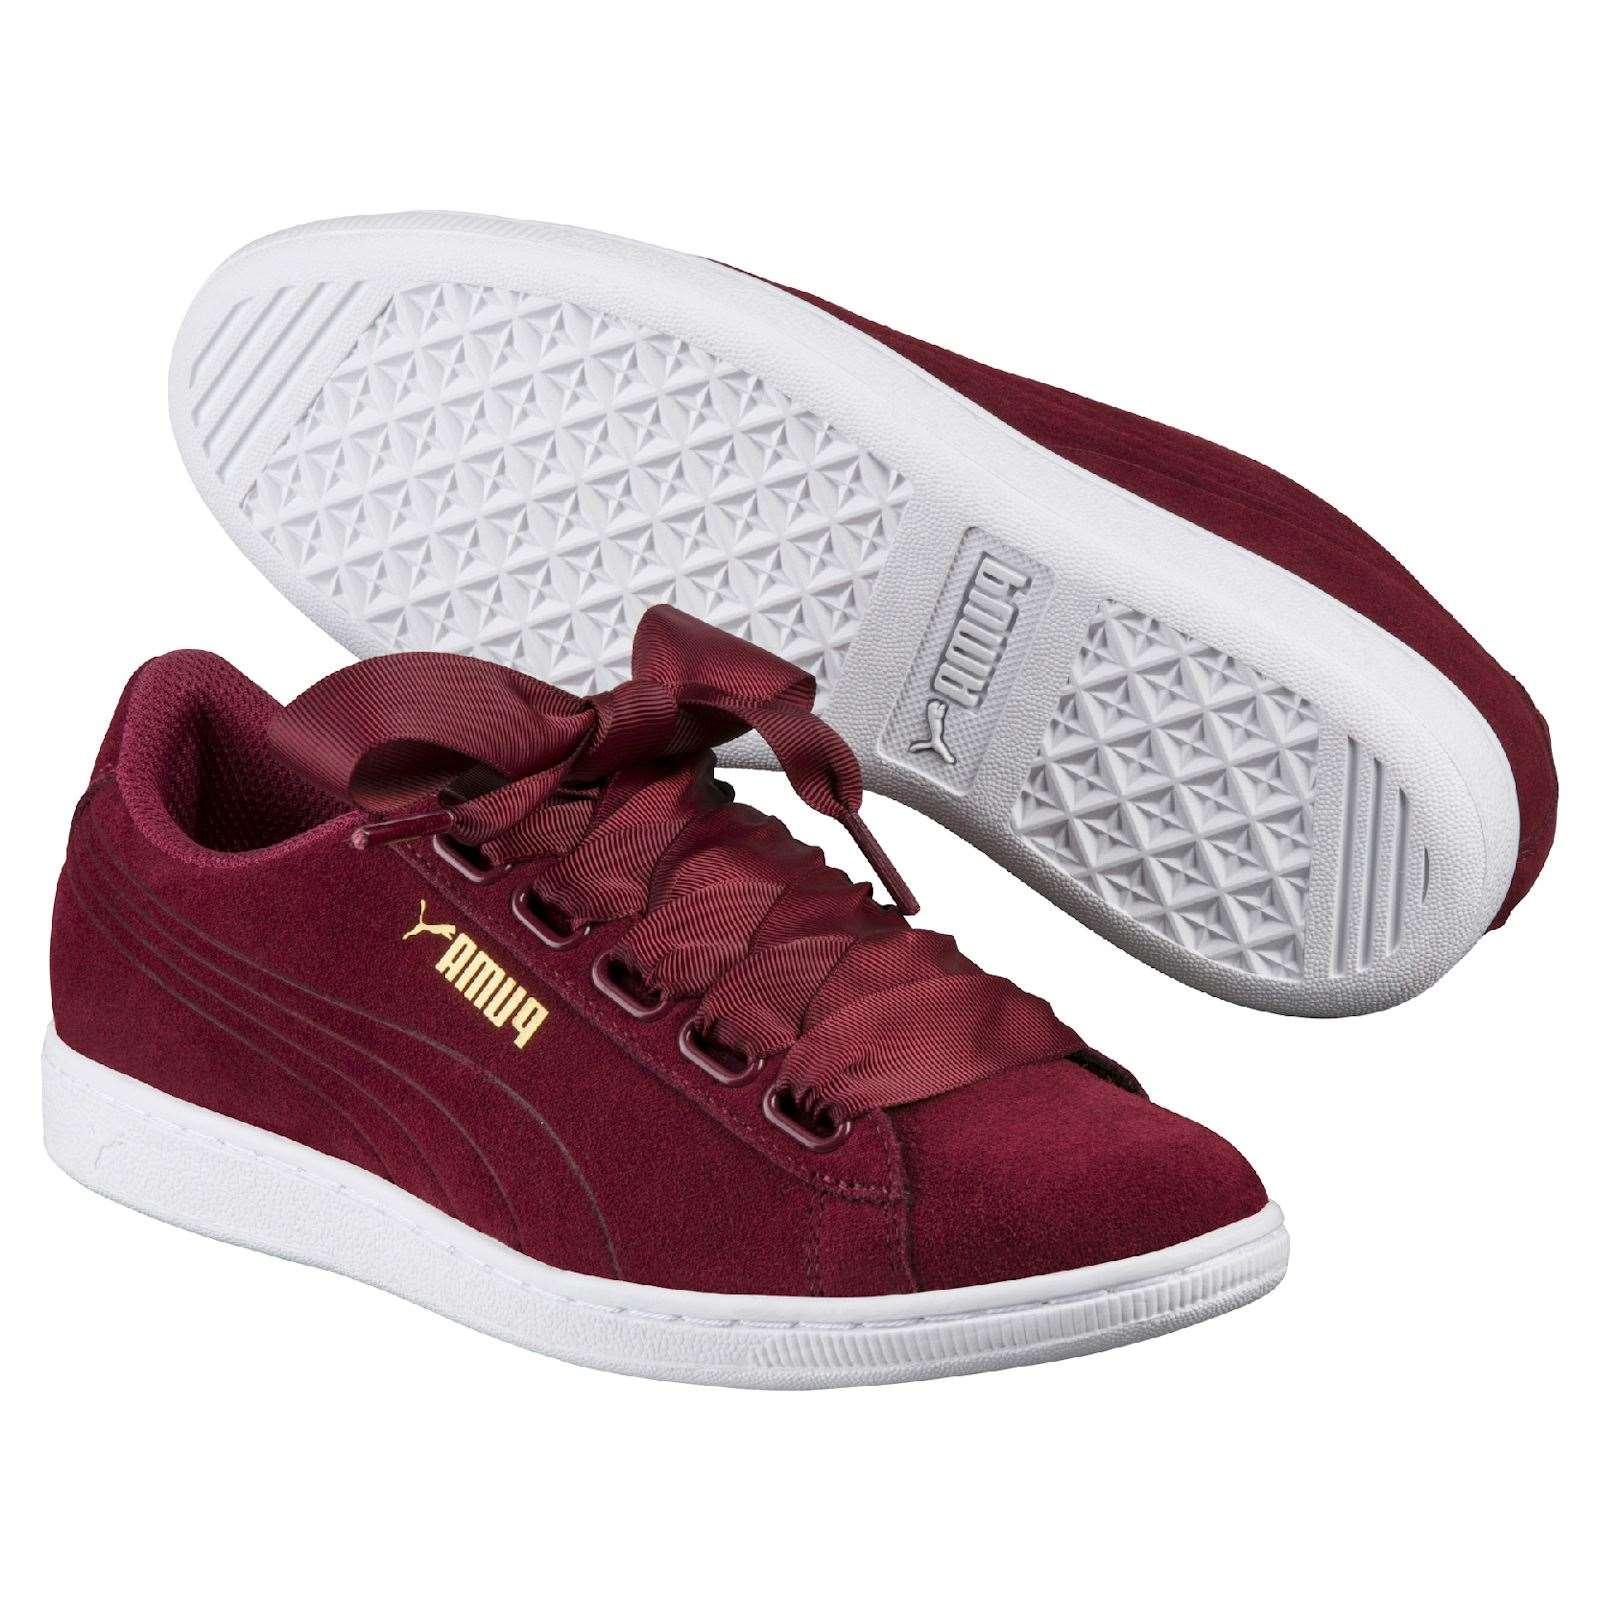 Bordeaux Mode Baskets Vikky Ribbon Puma Brandalley qYIa8Uaw